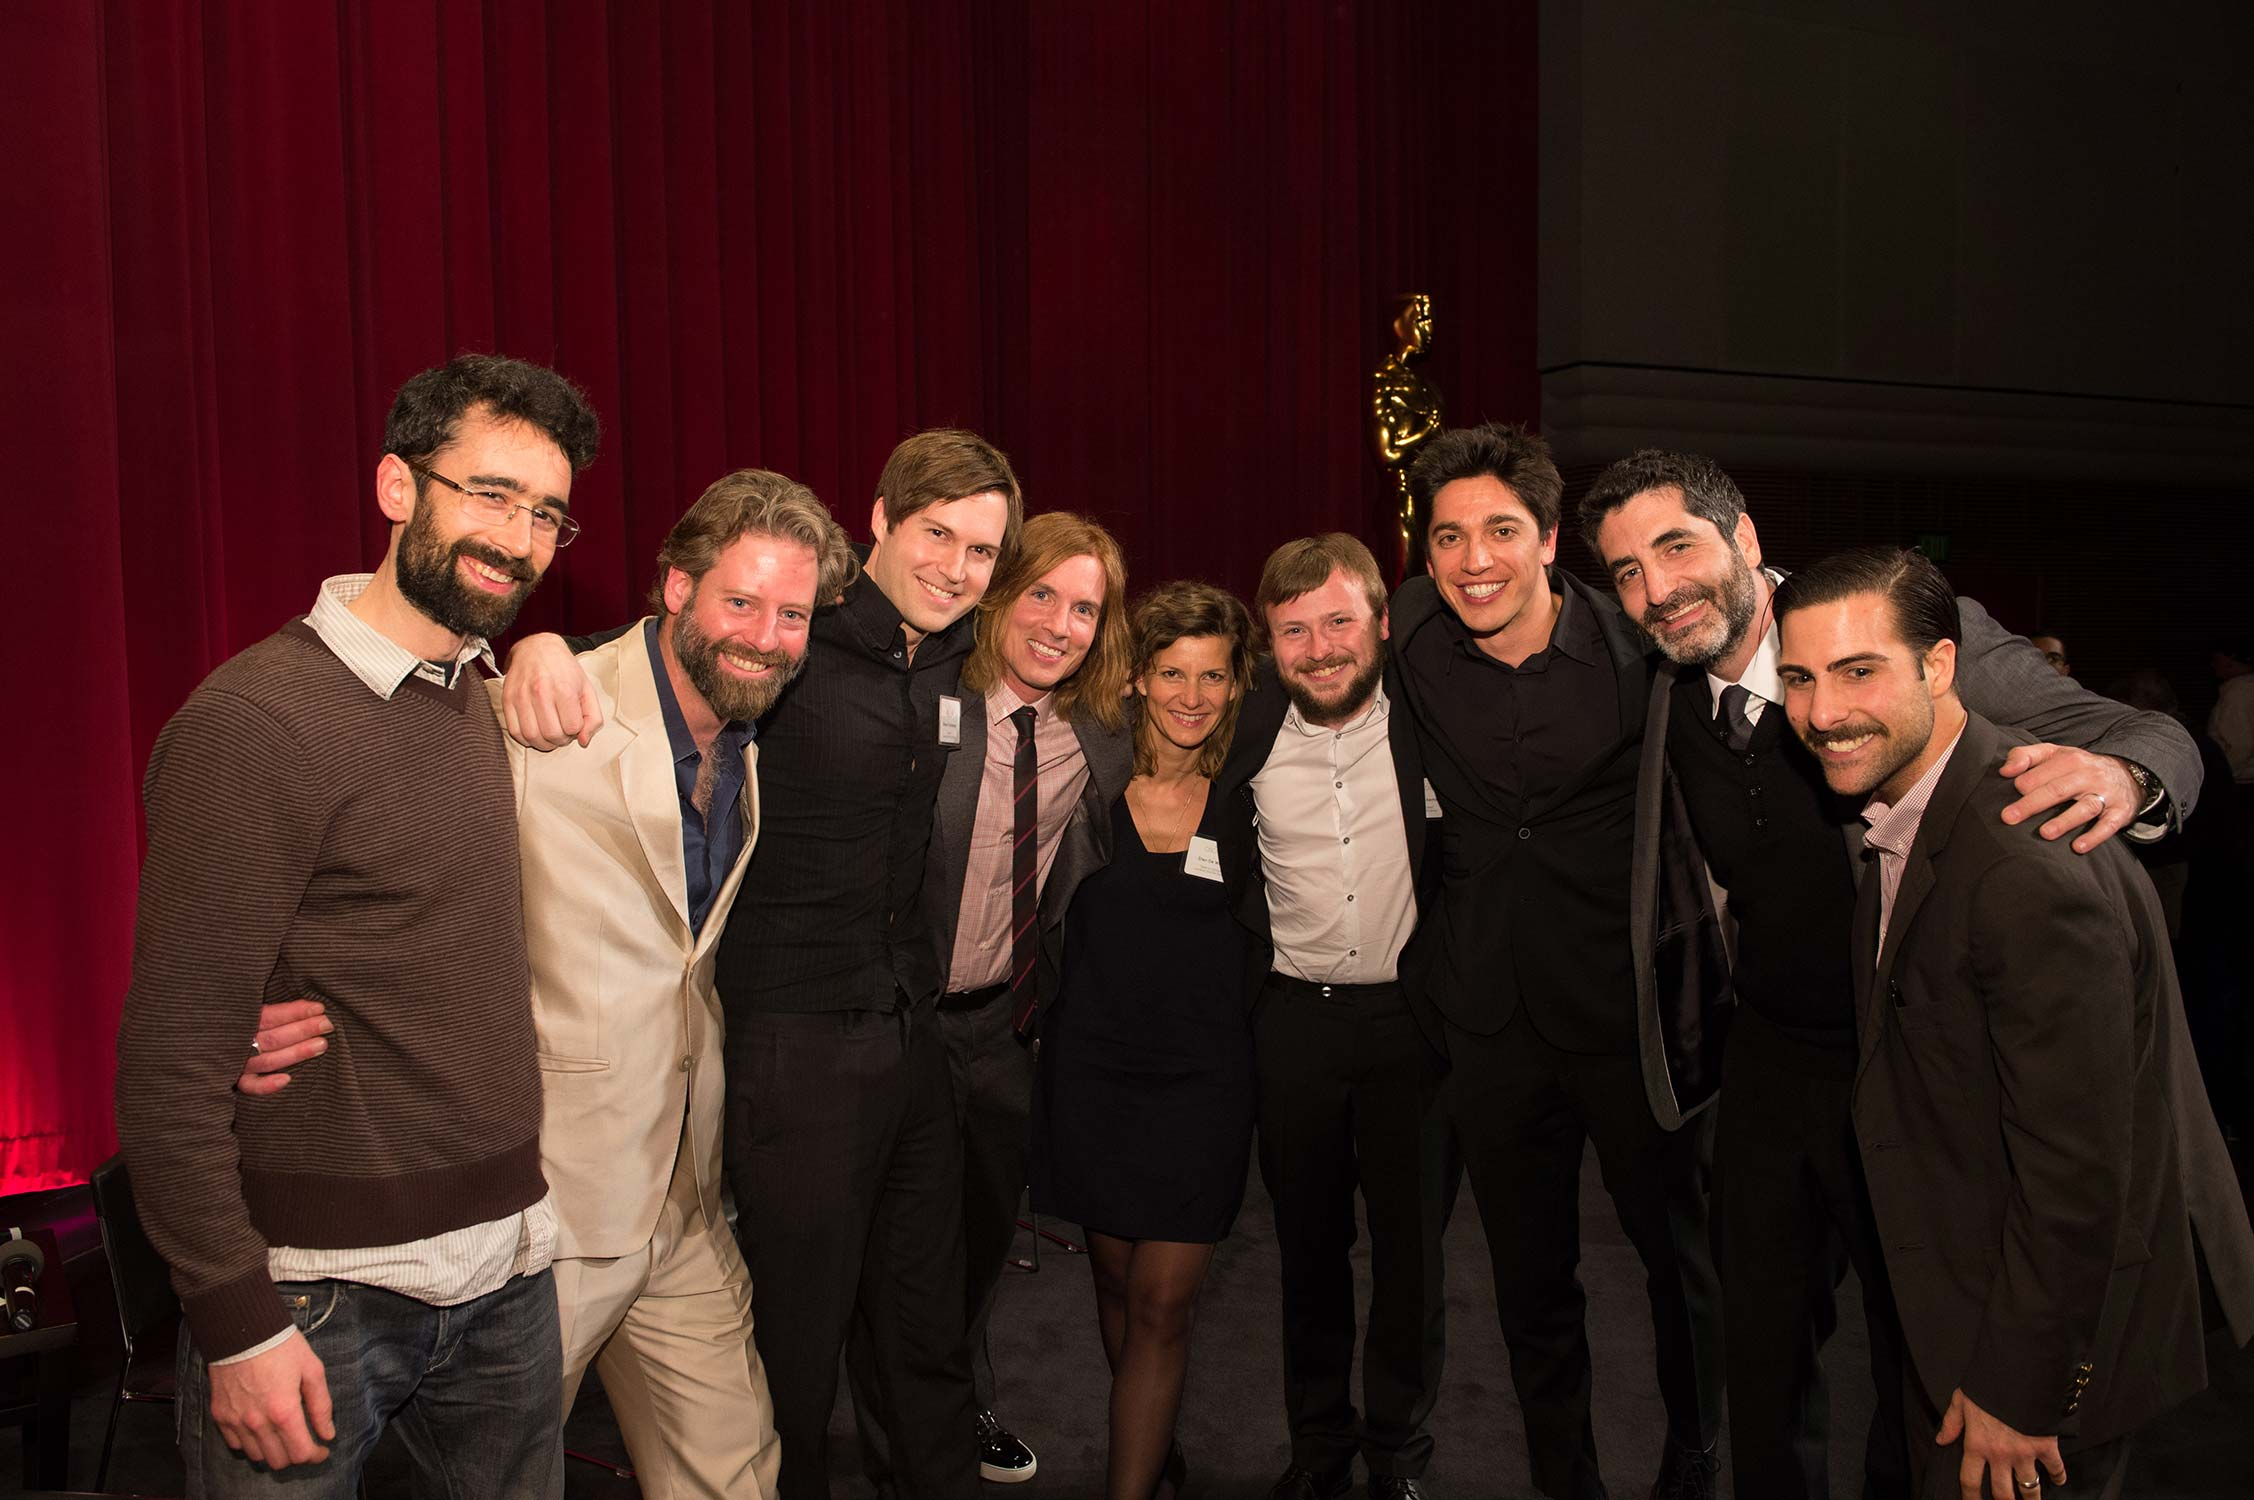 The filmmakers with host Jason Schwartzman.